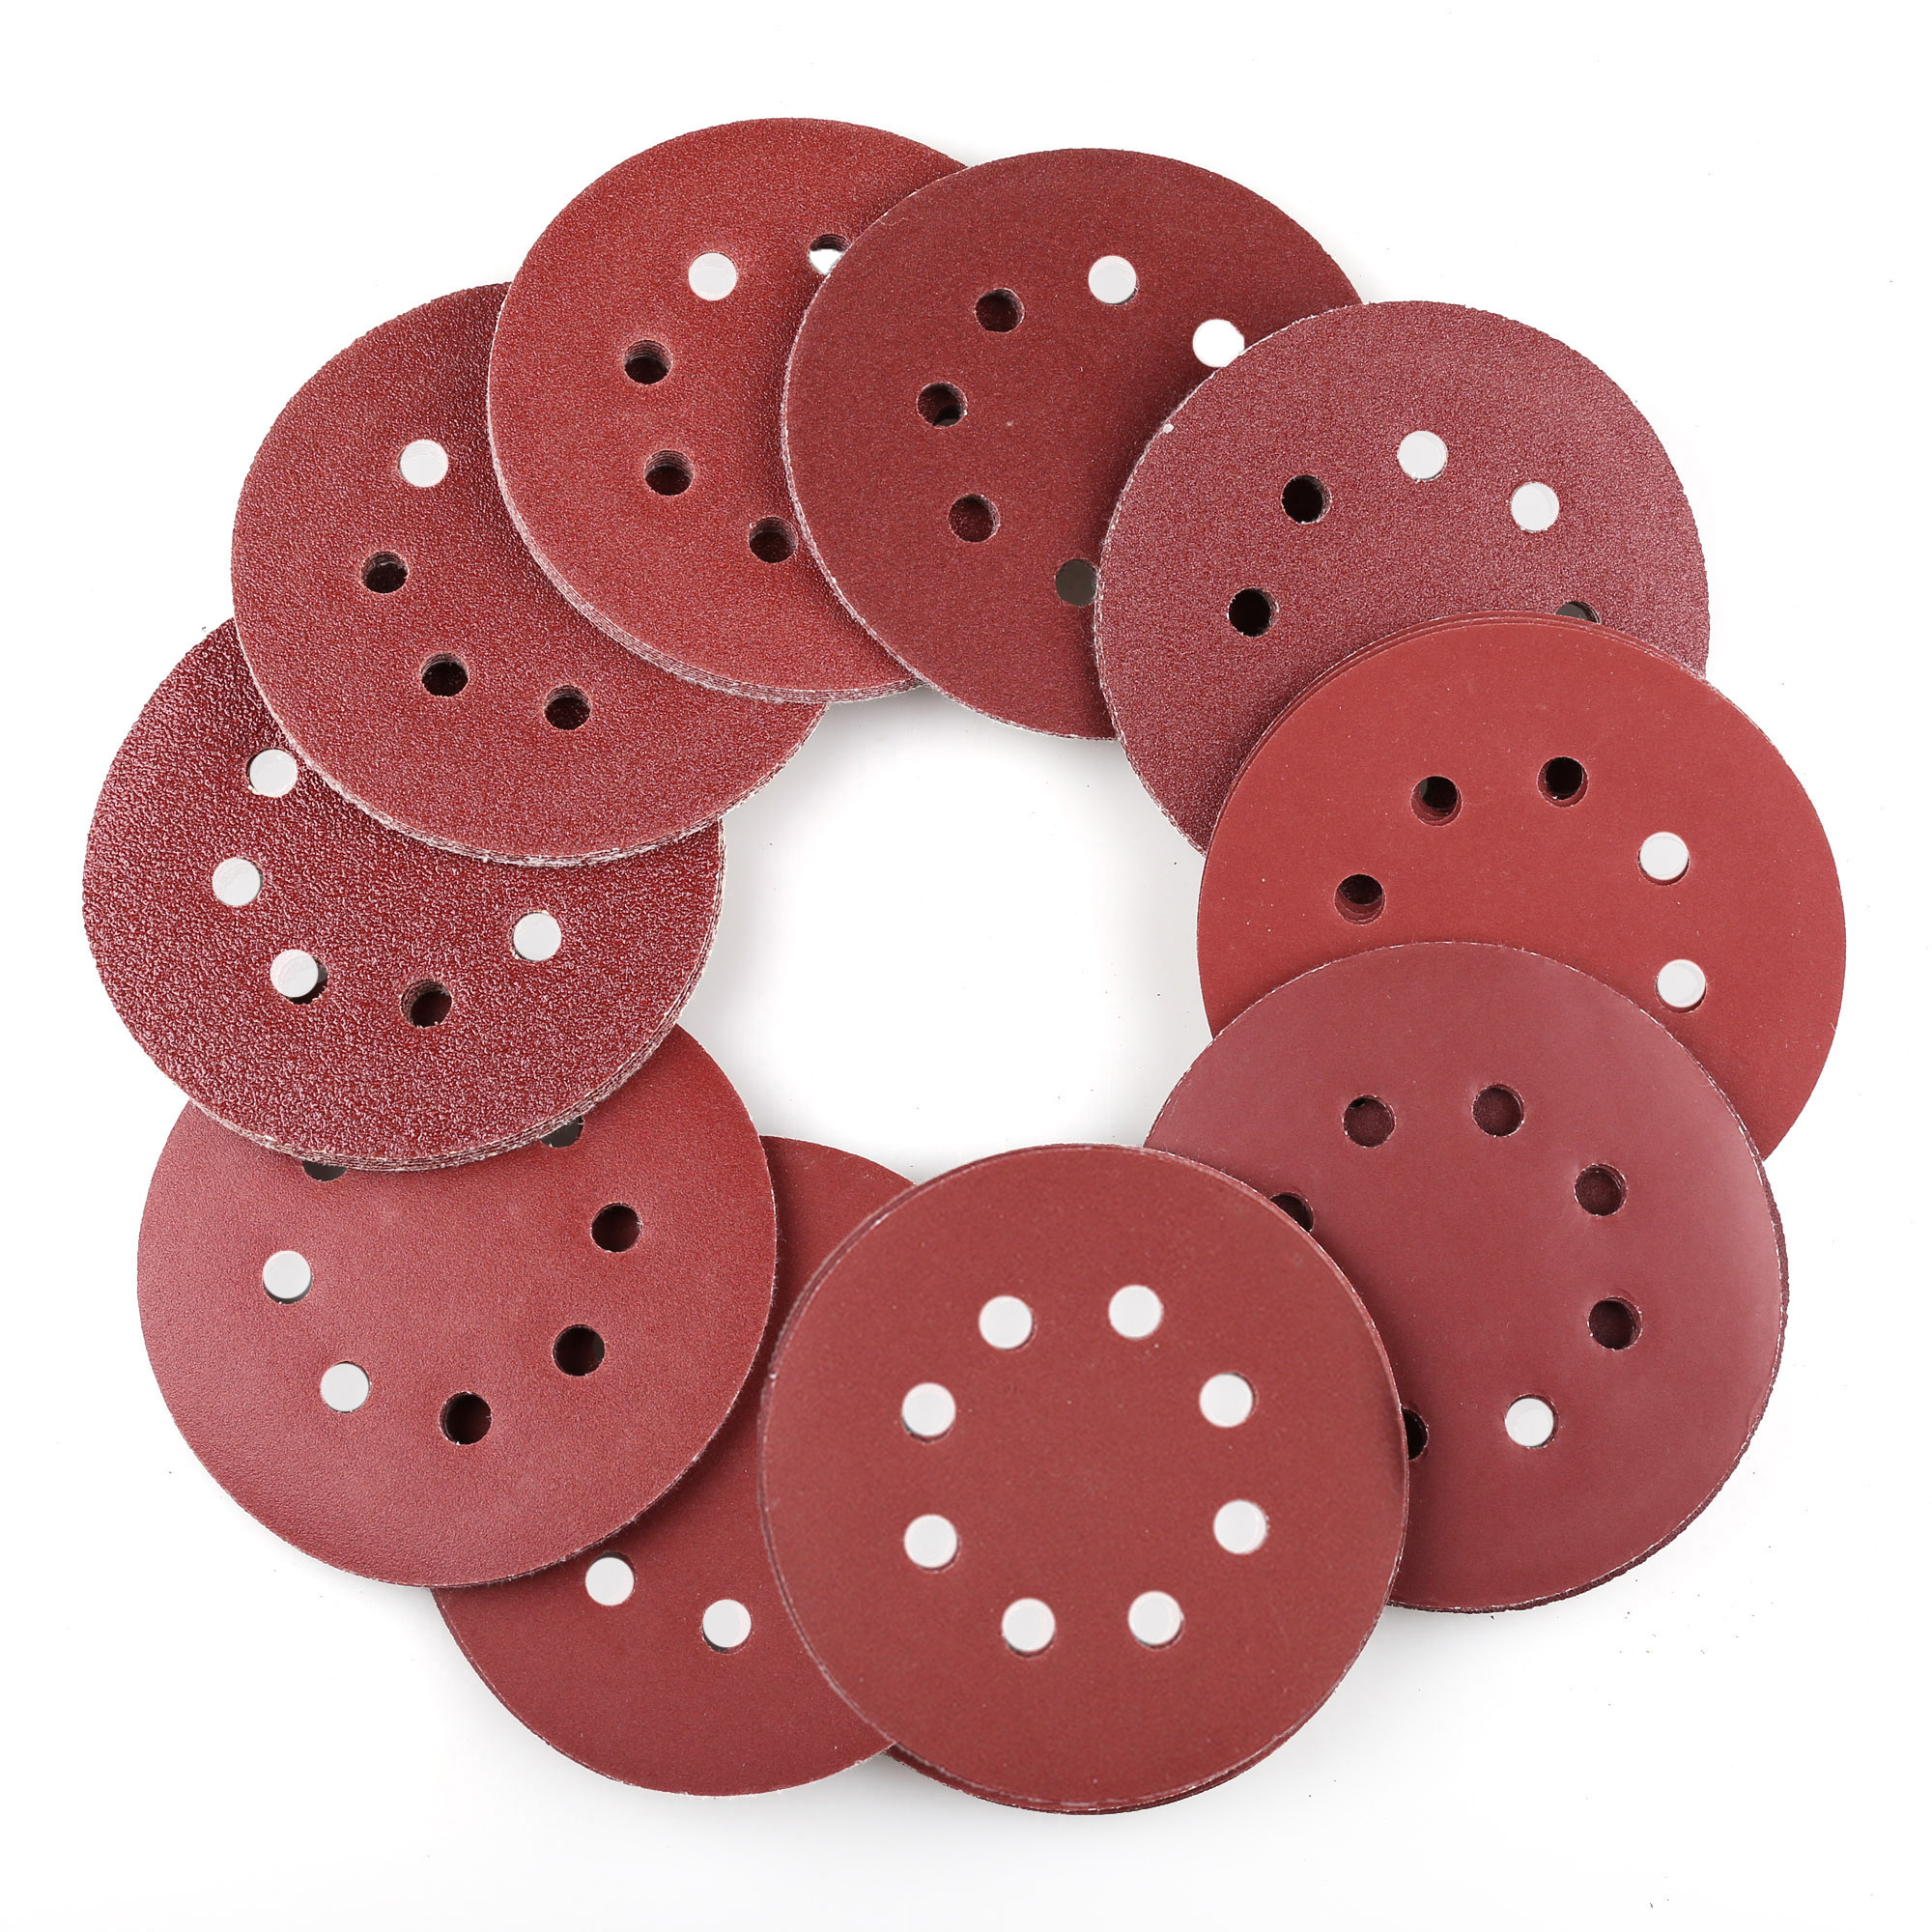 5 inch sanding discs 80 grit kindara thermometer